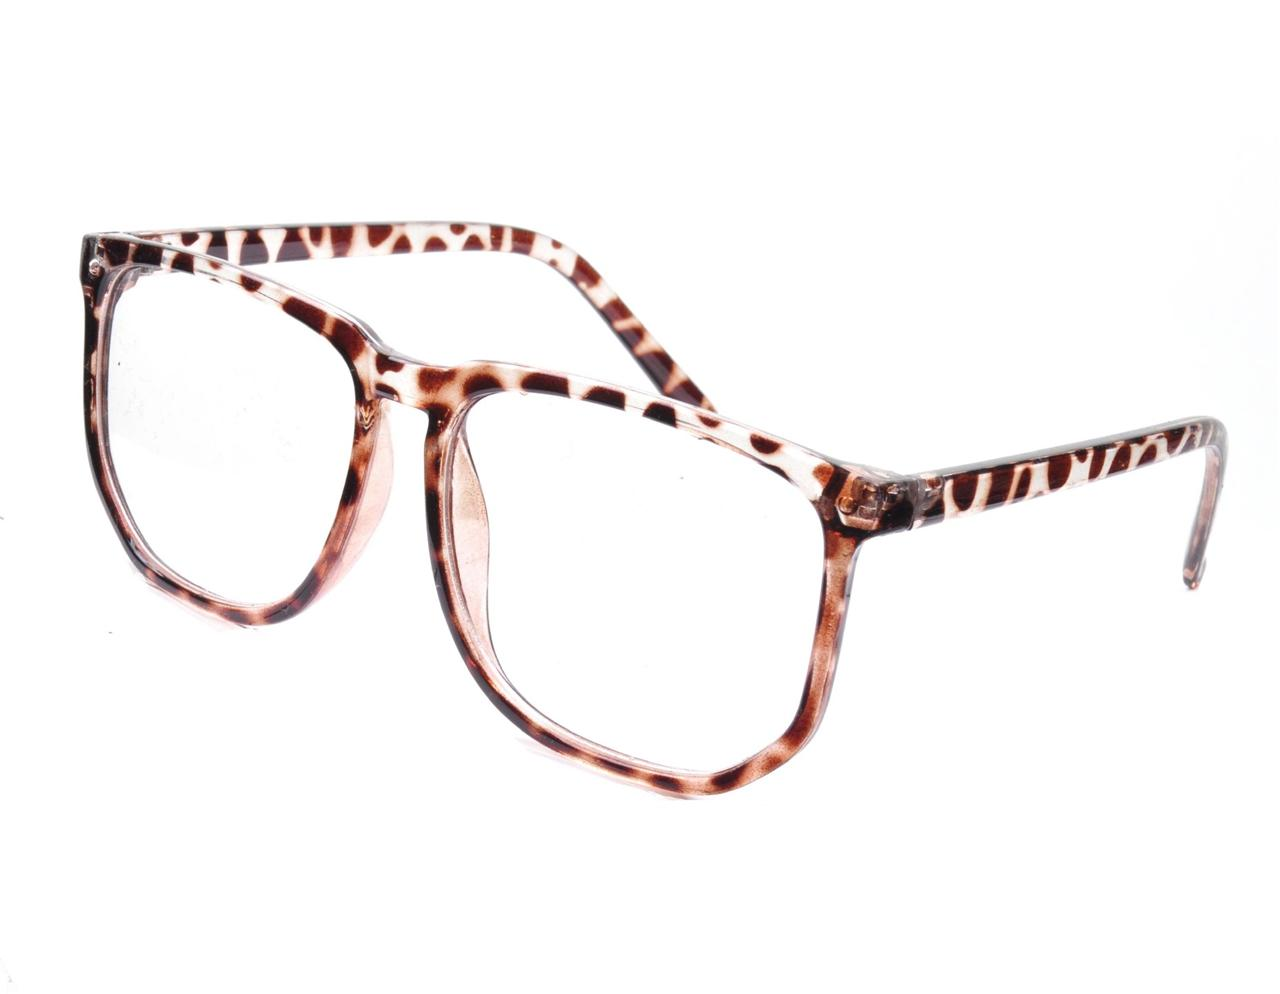 Big Black Frame Nerd Glasses : VTG 70s 80s Style Clear Lens Tortoiseshell BIG Frame Geek ...